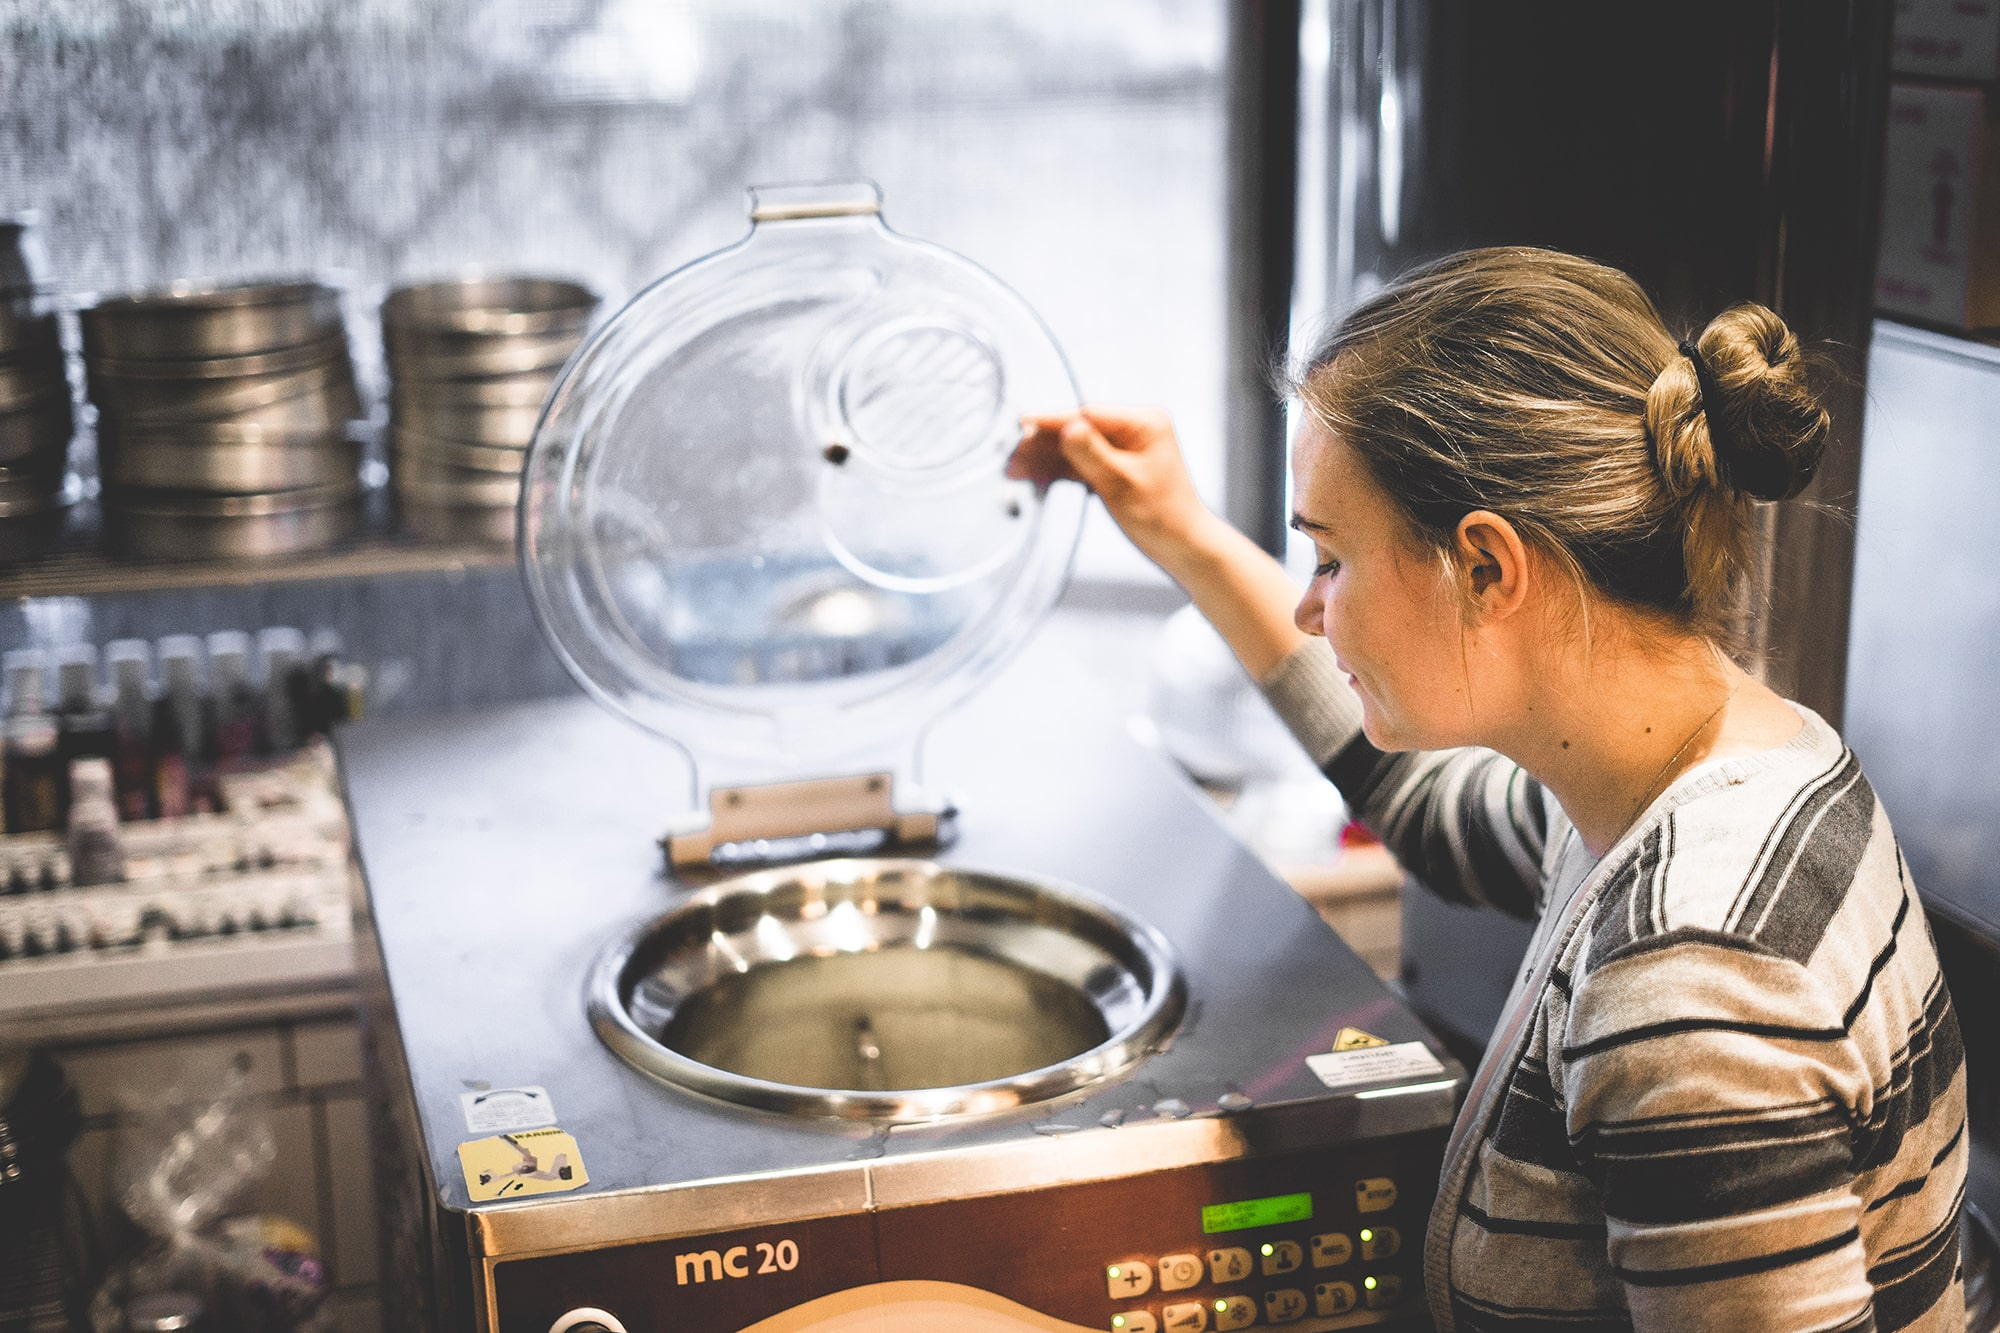 Pastry Chef Sarah Bruggeman prepares gelato with the Cattabriga Masterchef.